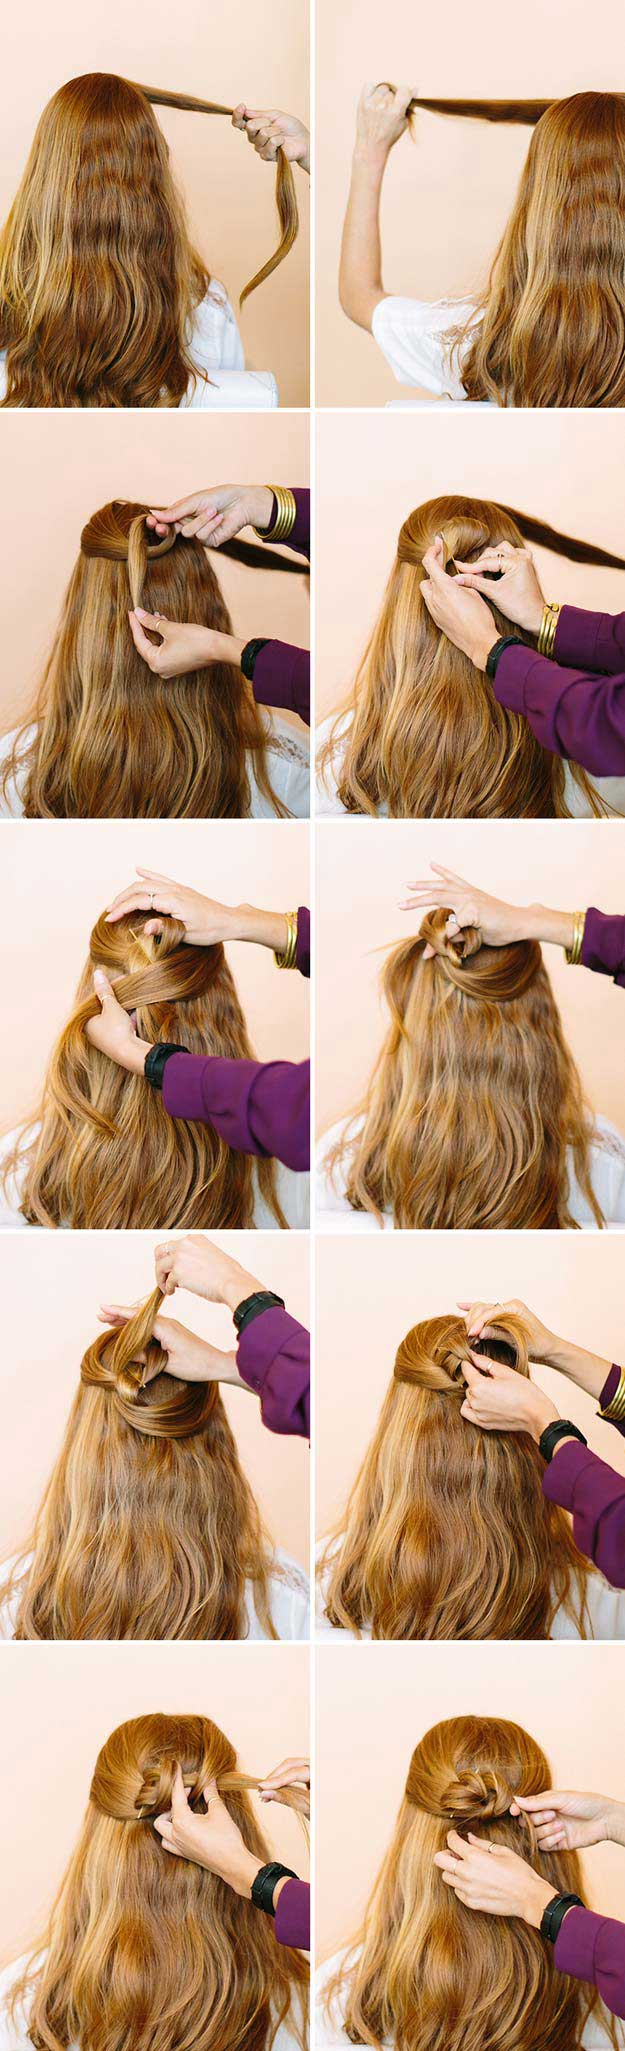 ِAwosome Half up-Half down Hairstyles And TUTORIAL for long hair 8